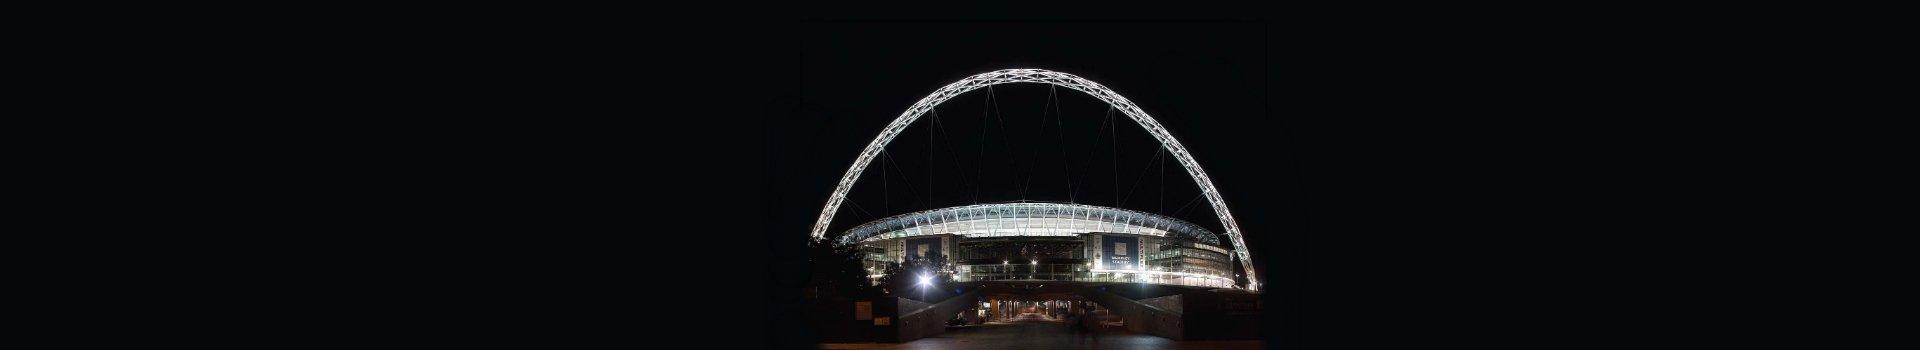 Wembley Stadium Tour banner image